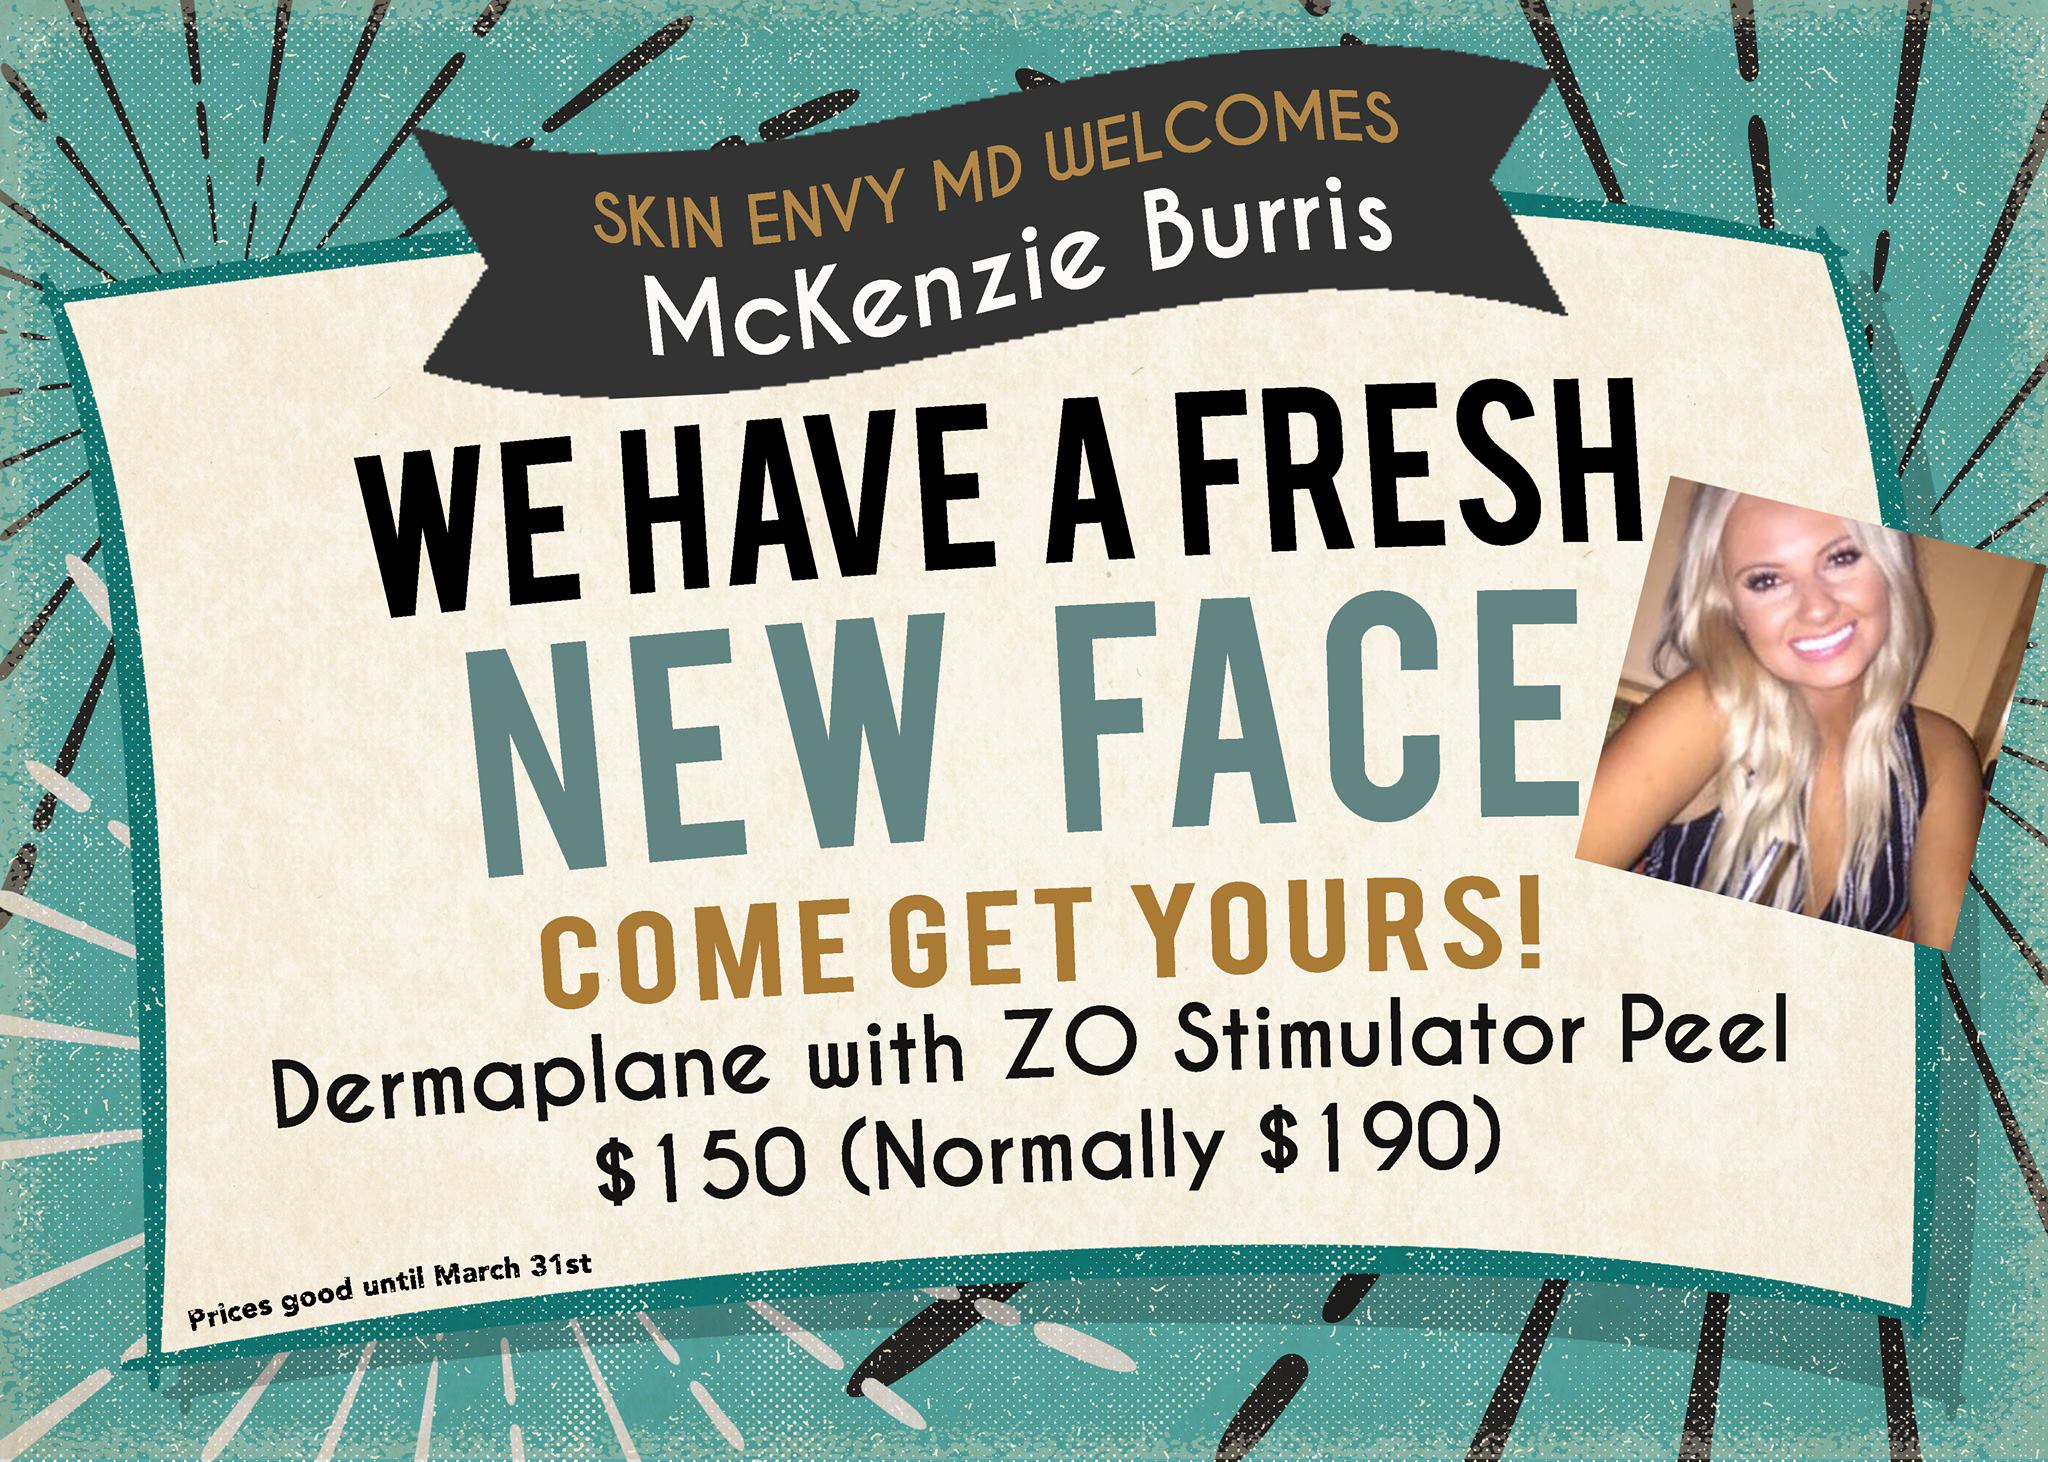 McKenzie Fresh New Face - by Skin Envy MD Nashville.jpg